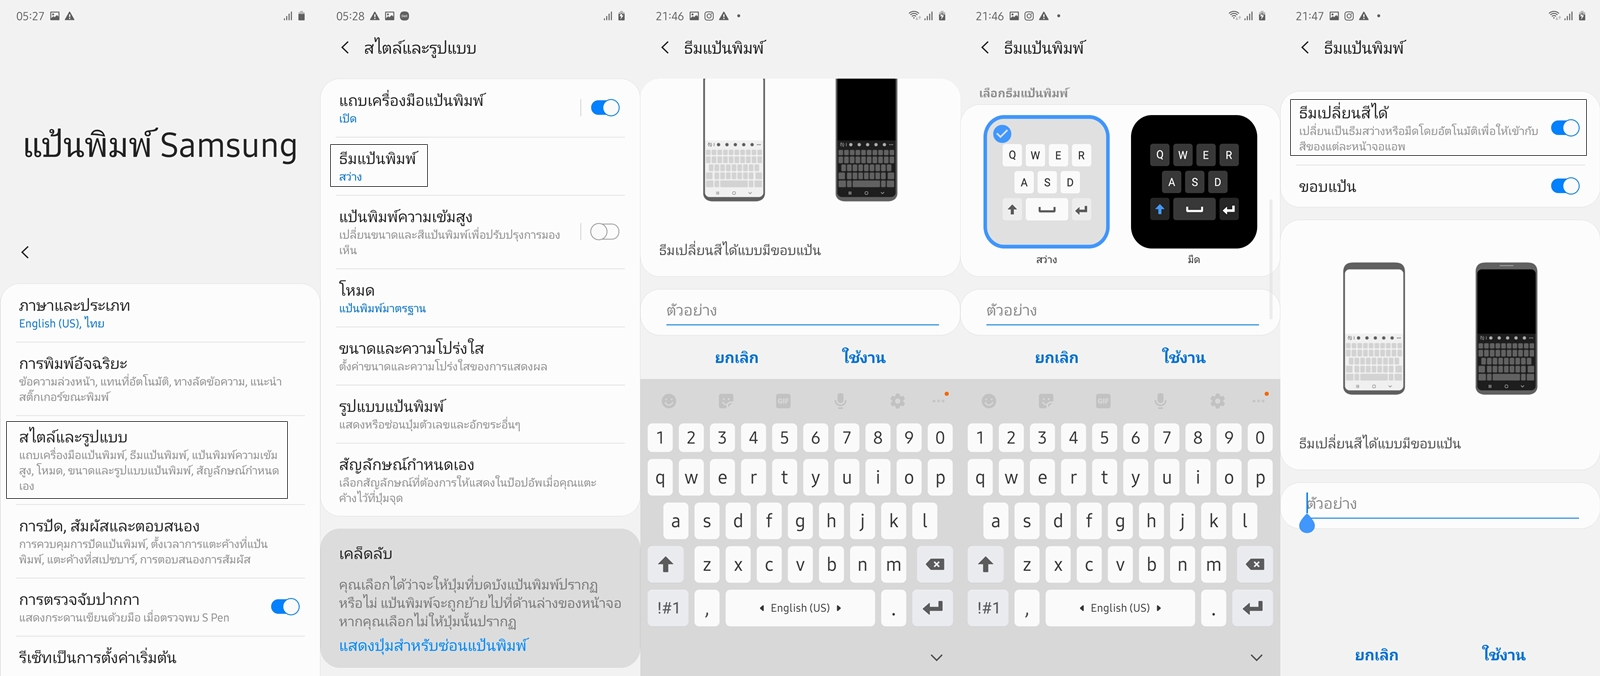 adaptive keyboard one ui 2.0